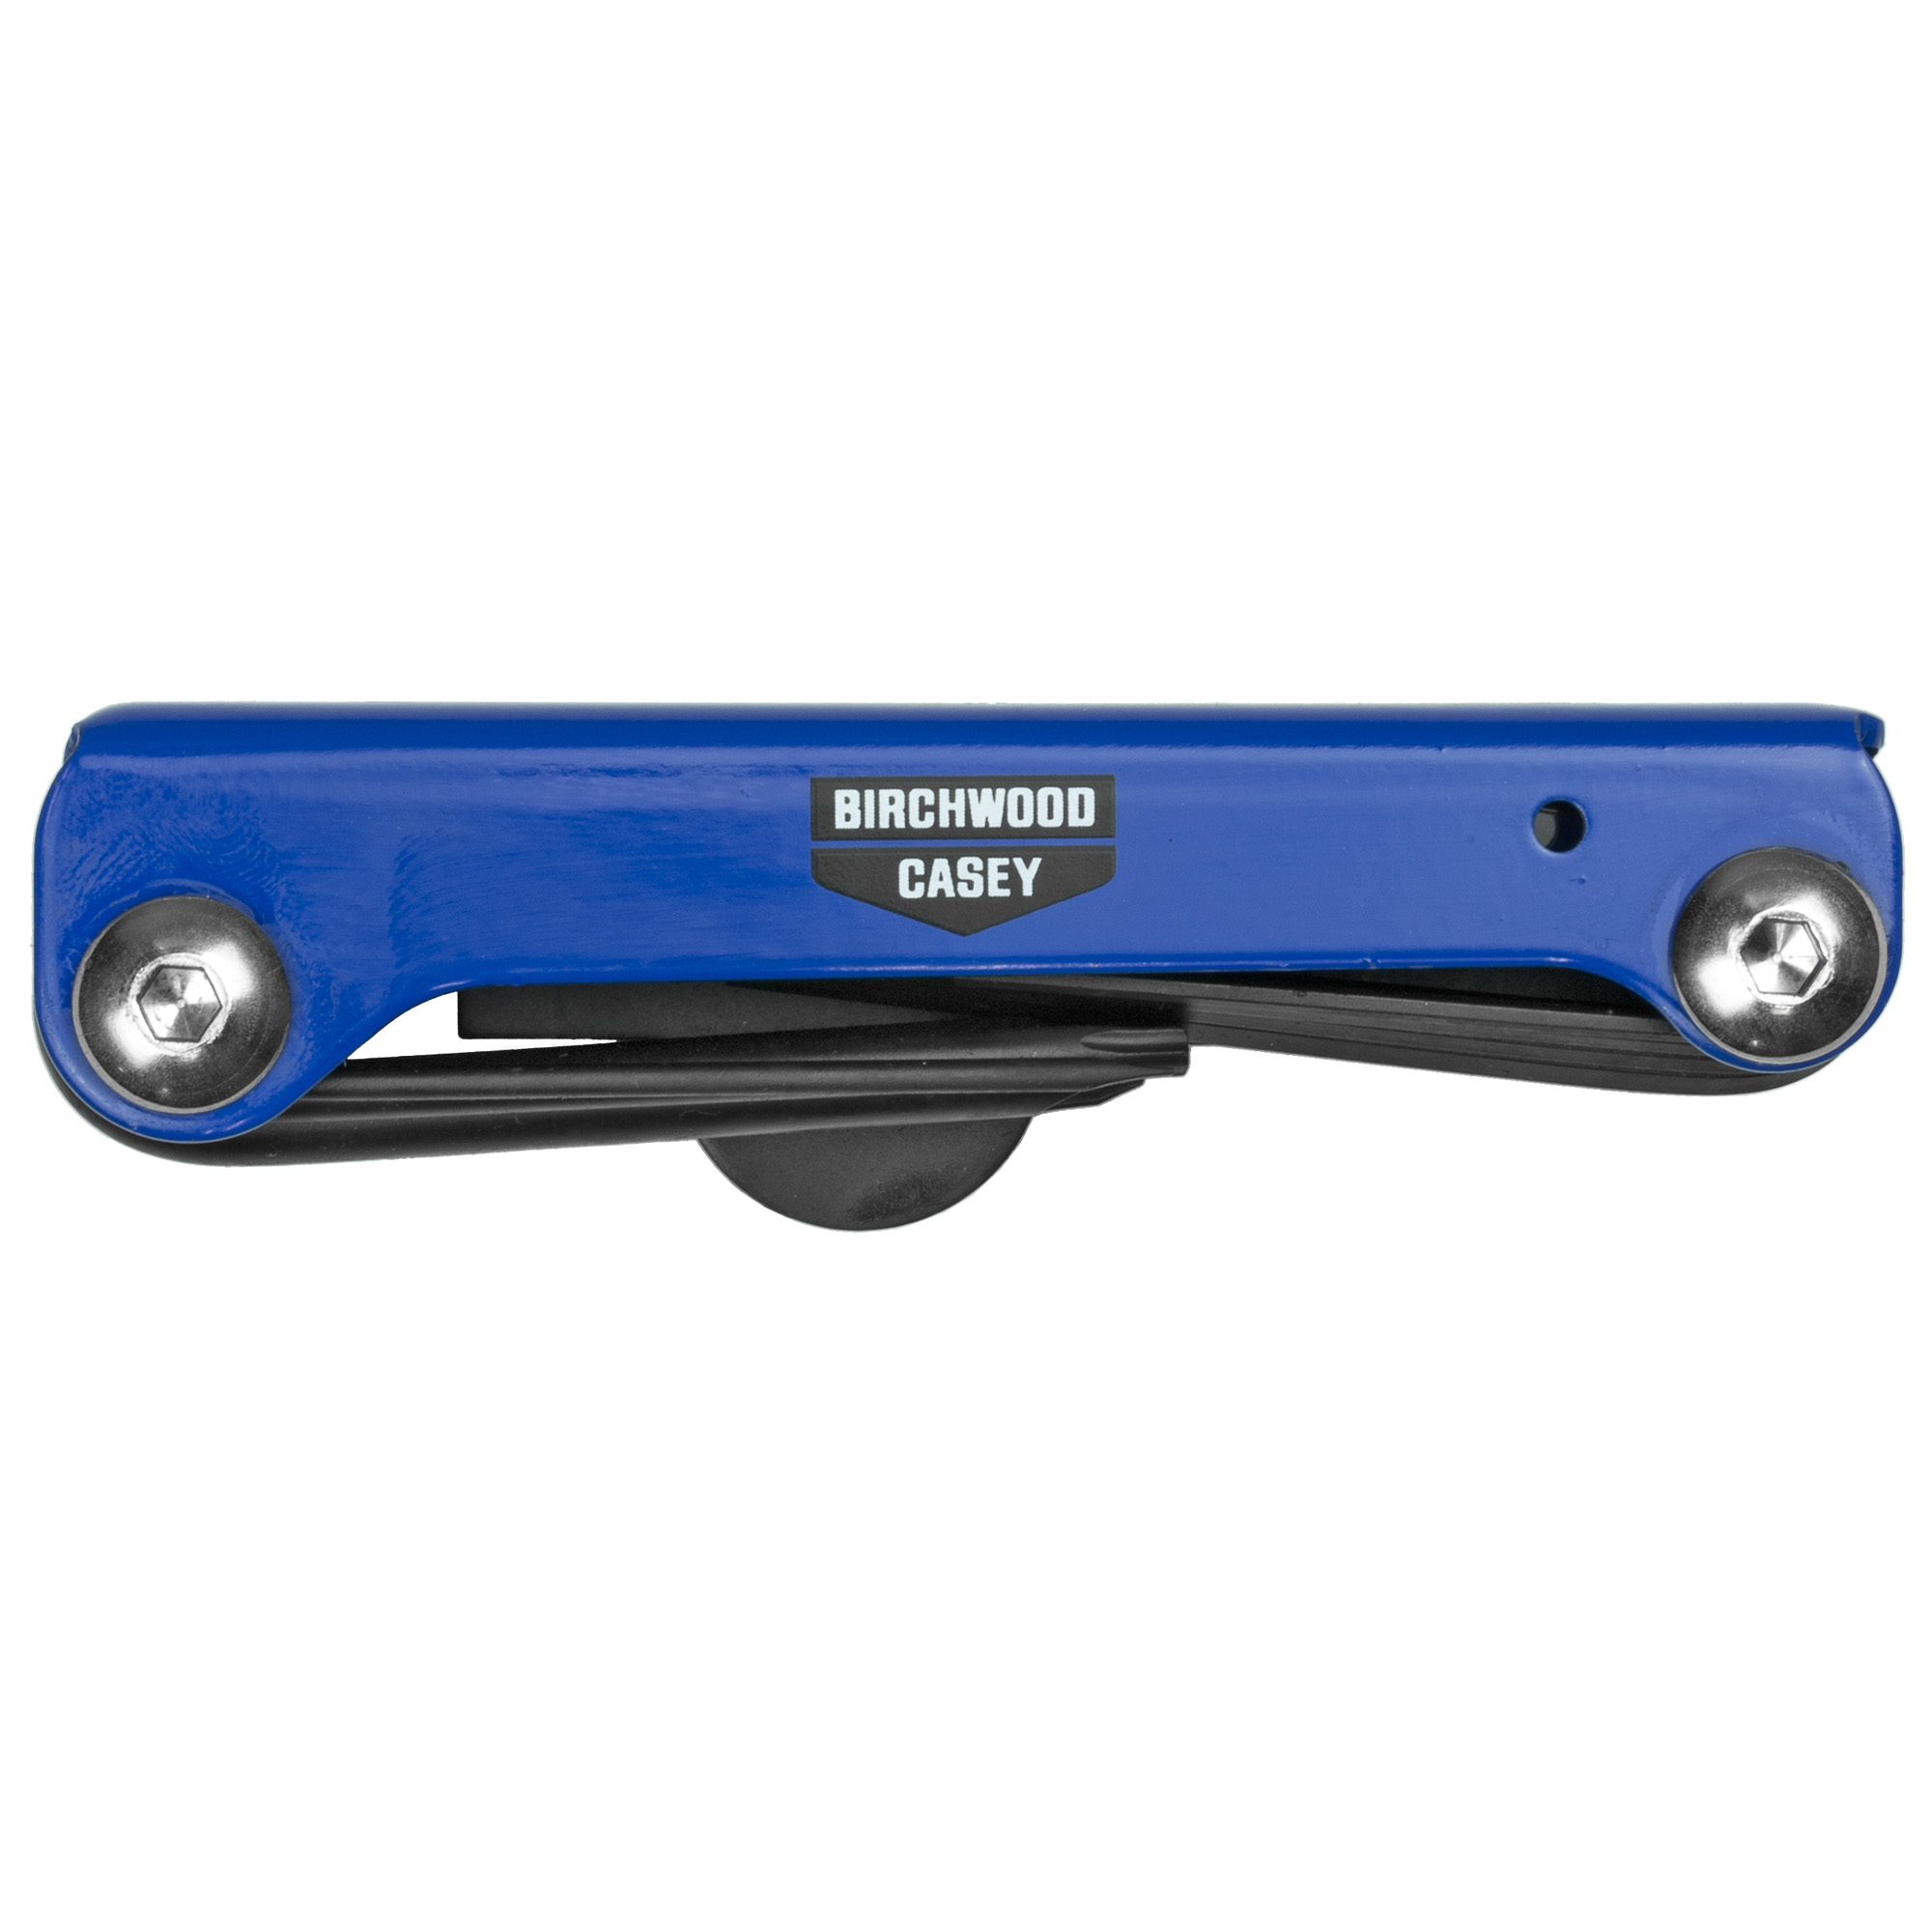 The Birchwood Casey(R) gun plumber folding multi tool is built from quality steel and is portable for range or field use. Gunsmith selected bits cover all your firearm repairs.